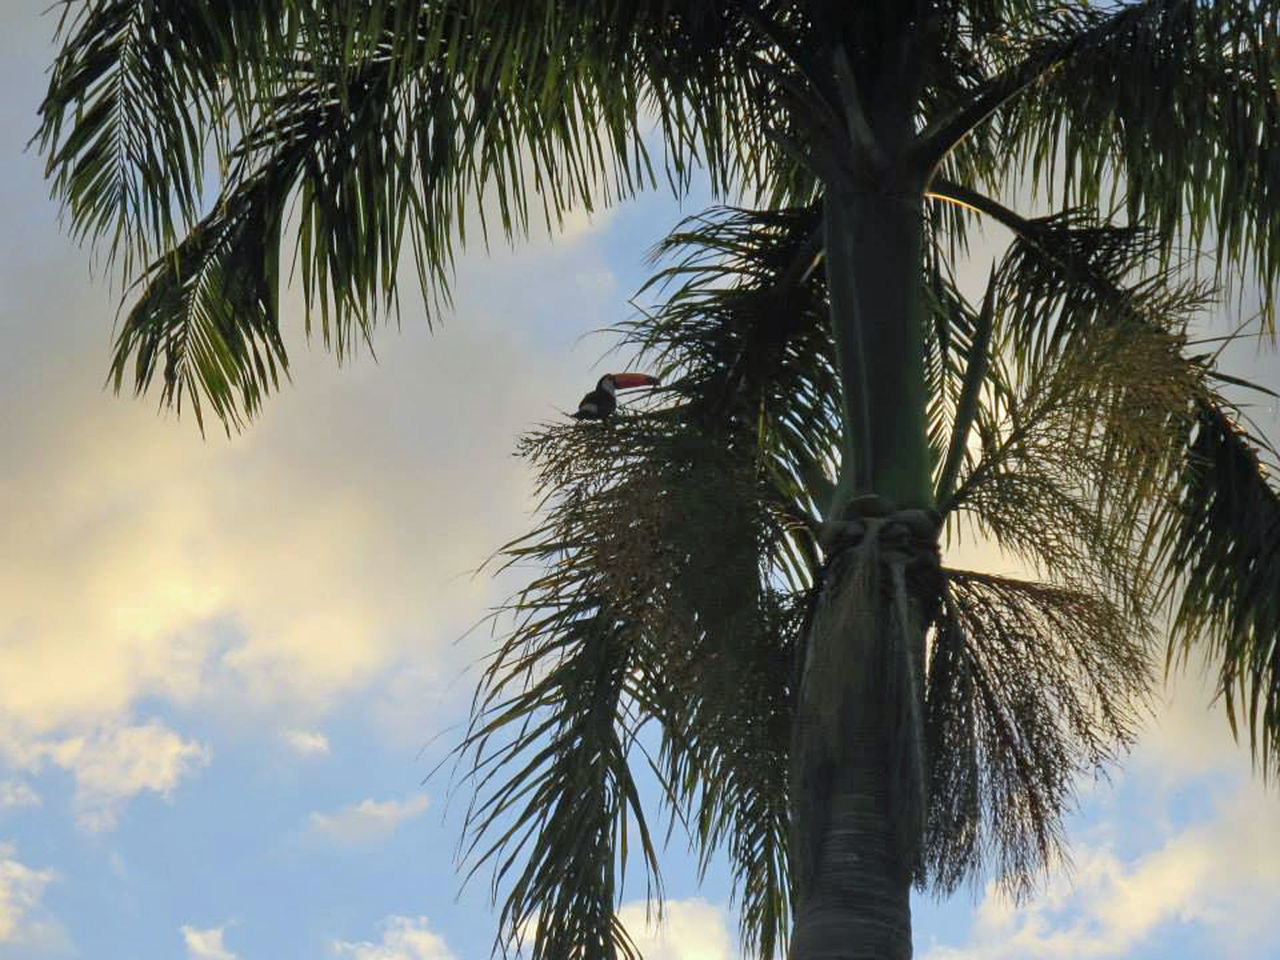 Toucan... Cloud - Sky Day No People Outdoors Palm Tree Scenics Sky Sunset Toucan Tree Tree Trunk Tropical Climate Tucan Tucano Vacations